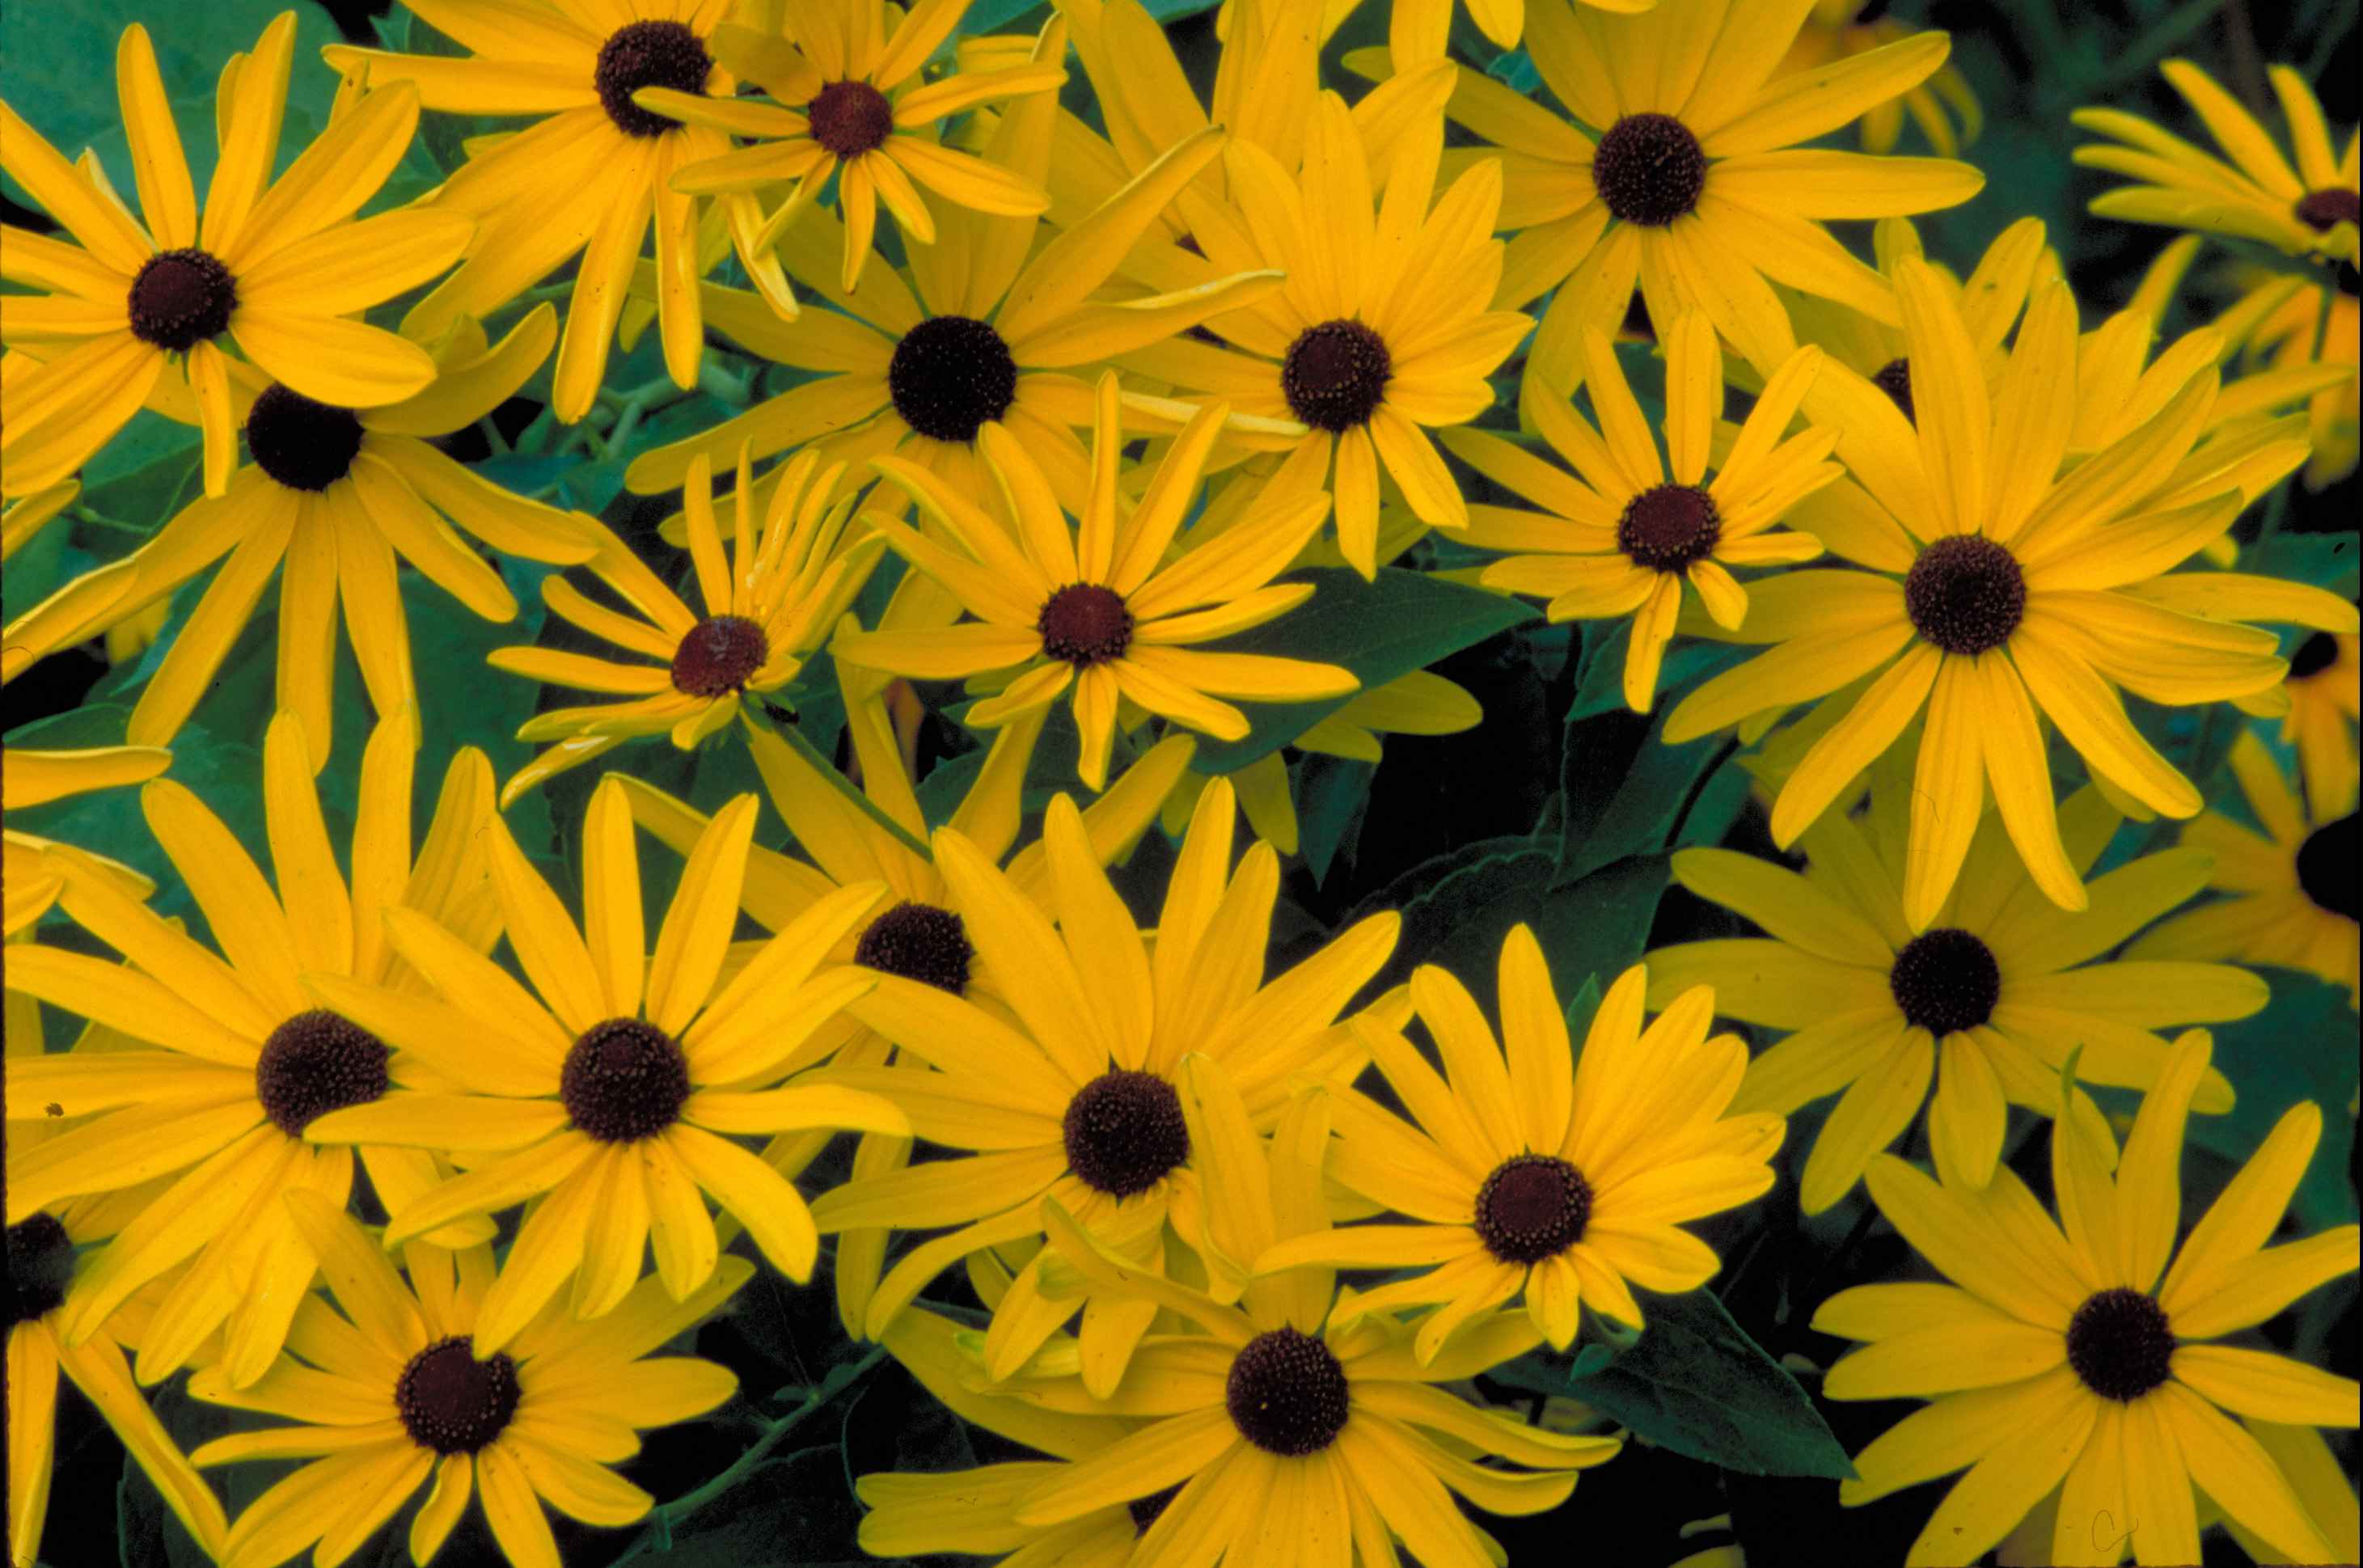 Filesweet black eyed susan bright yellow blossoms with dark brown filesweet black eyed susan bright yellow blossoms with dark brown ceters flowers rudbeckia subtomentosa mightylinksfo